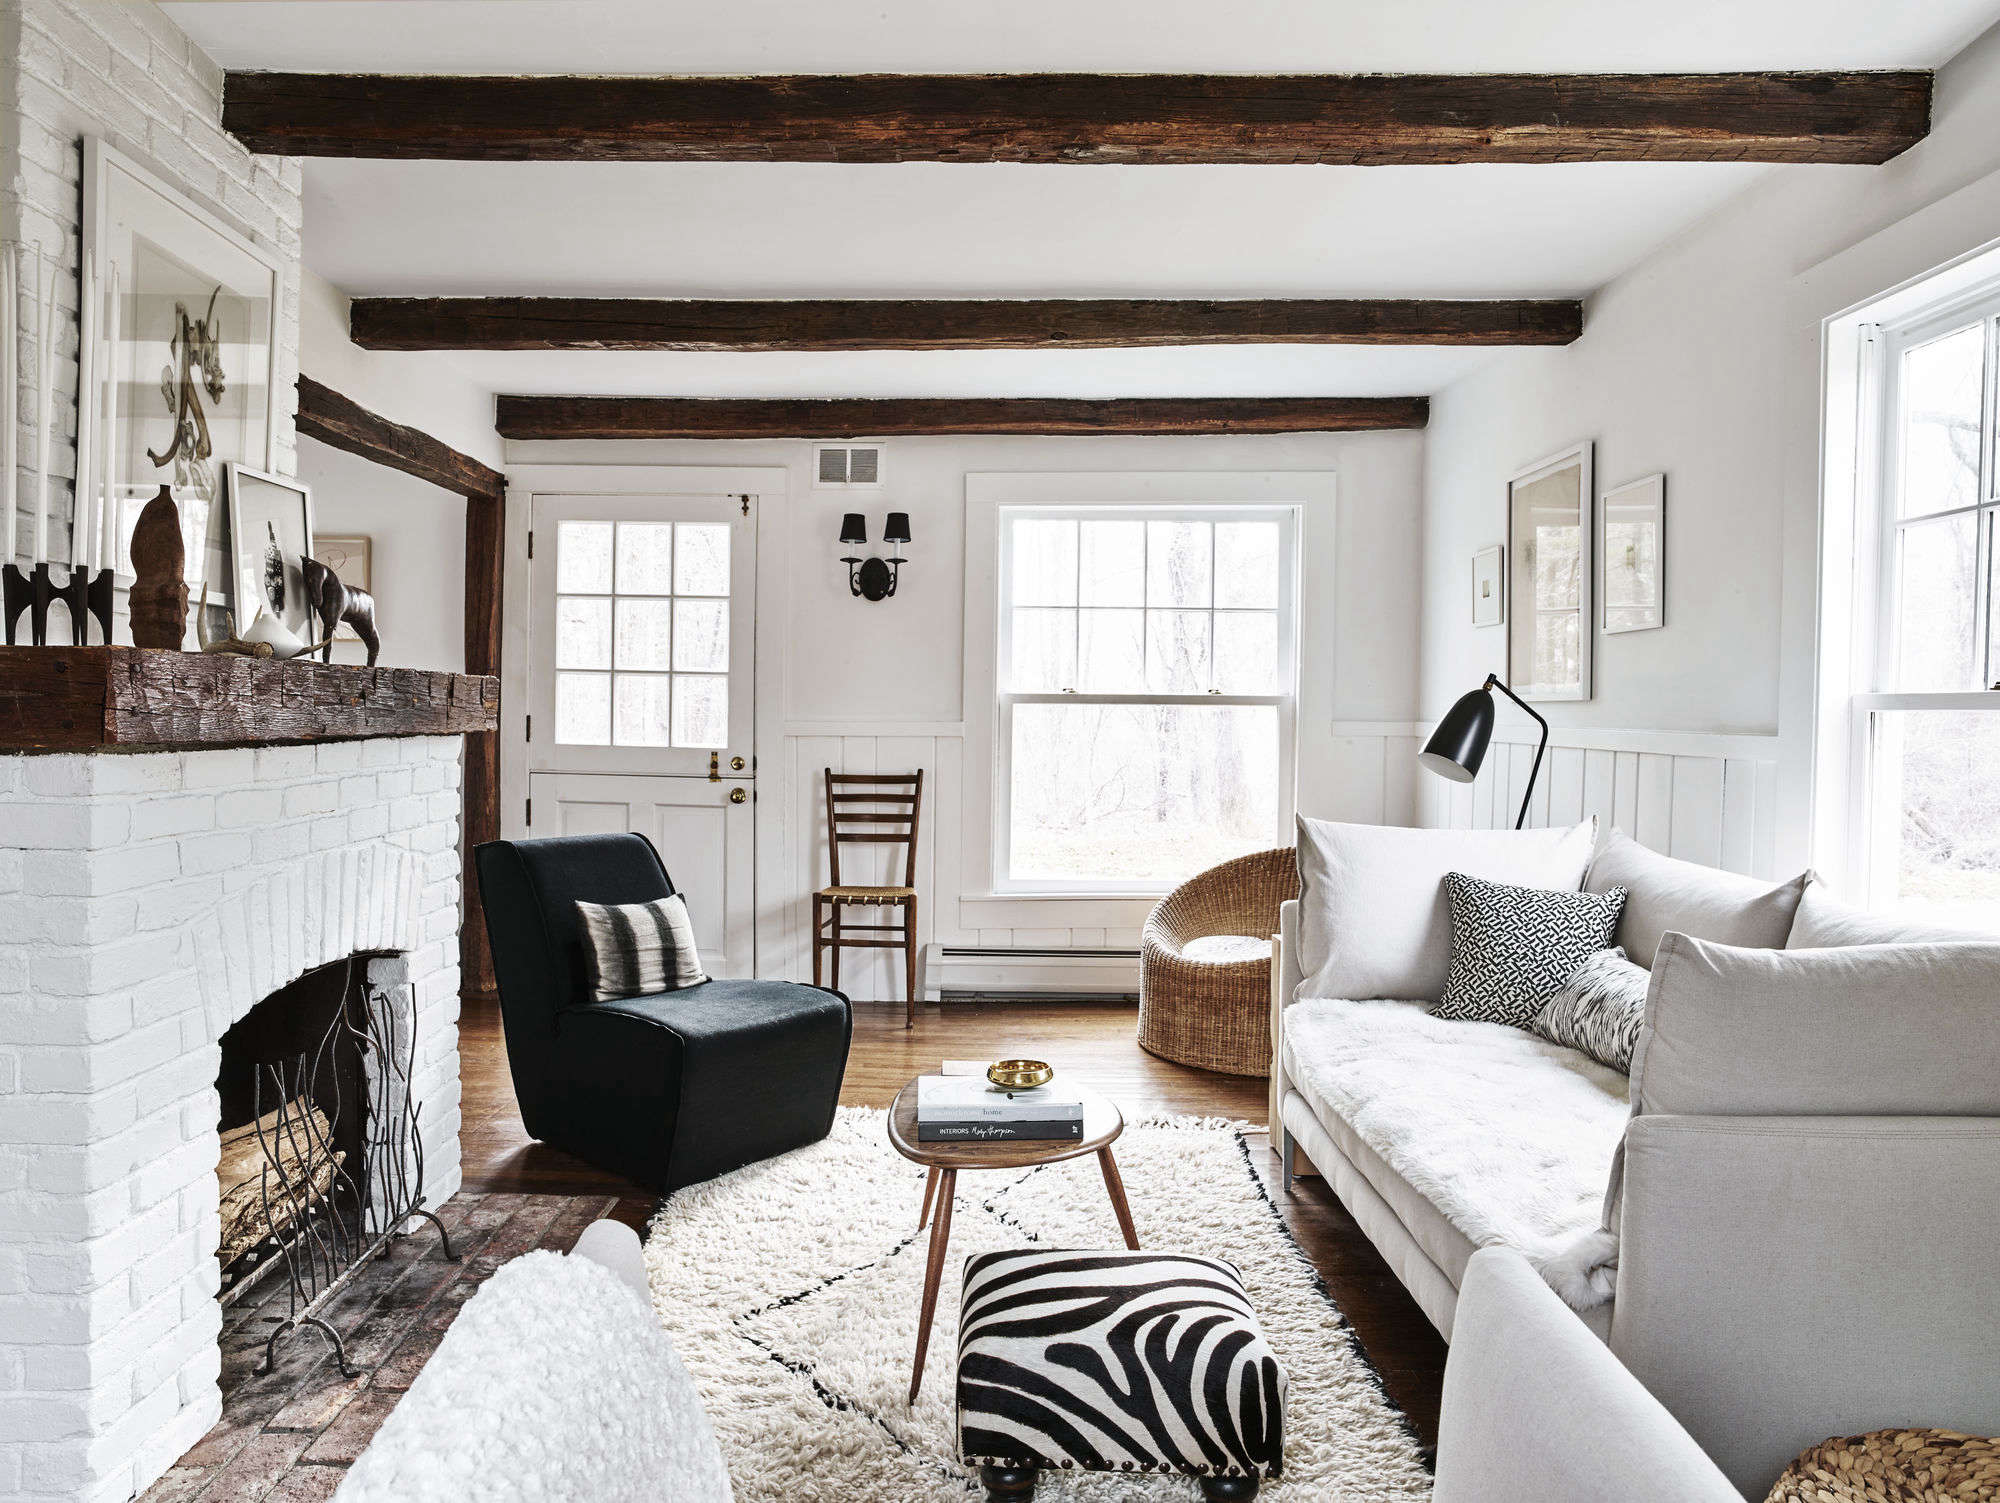 Cosmetic historic house remodel using little more than white paint ...